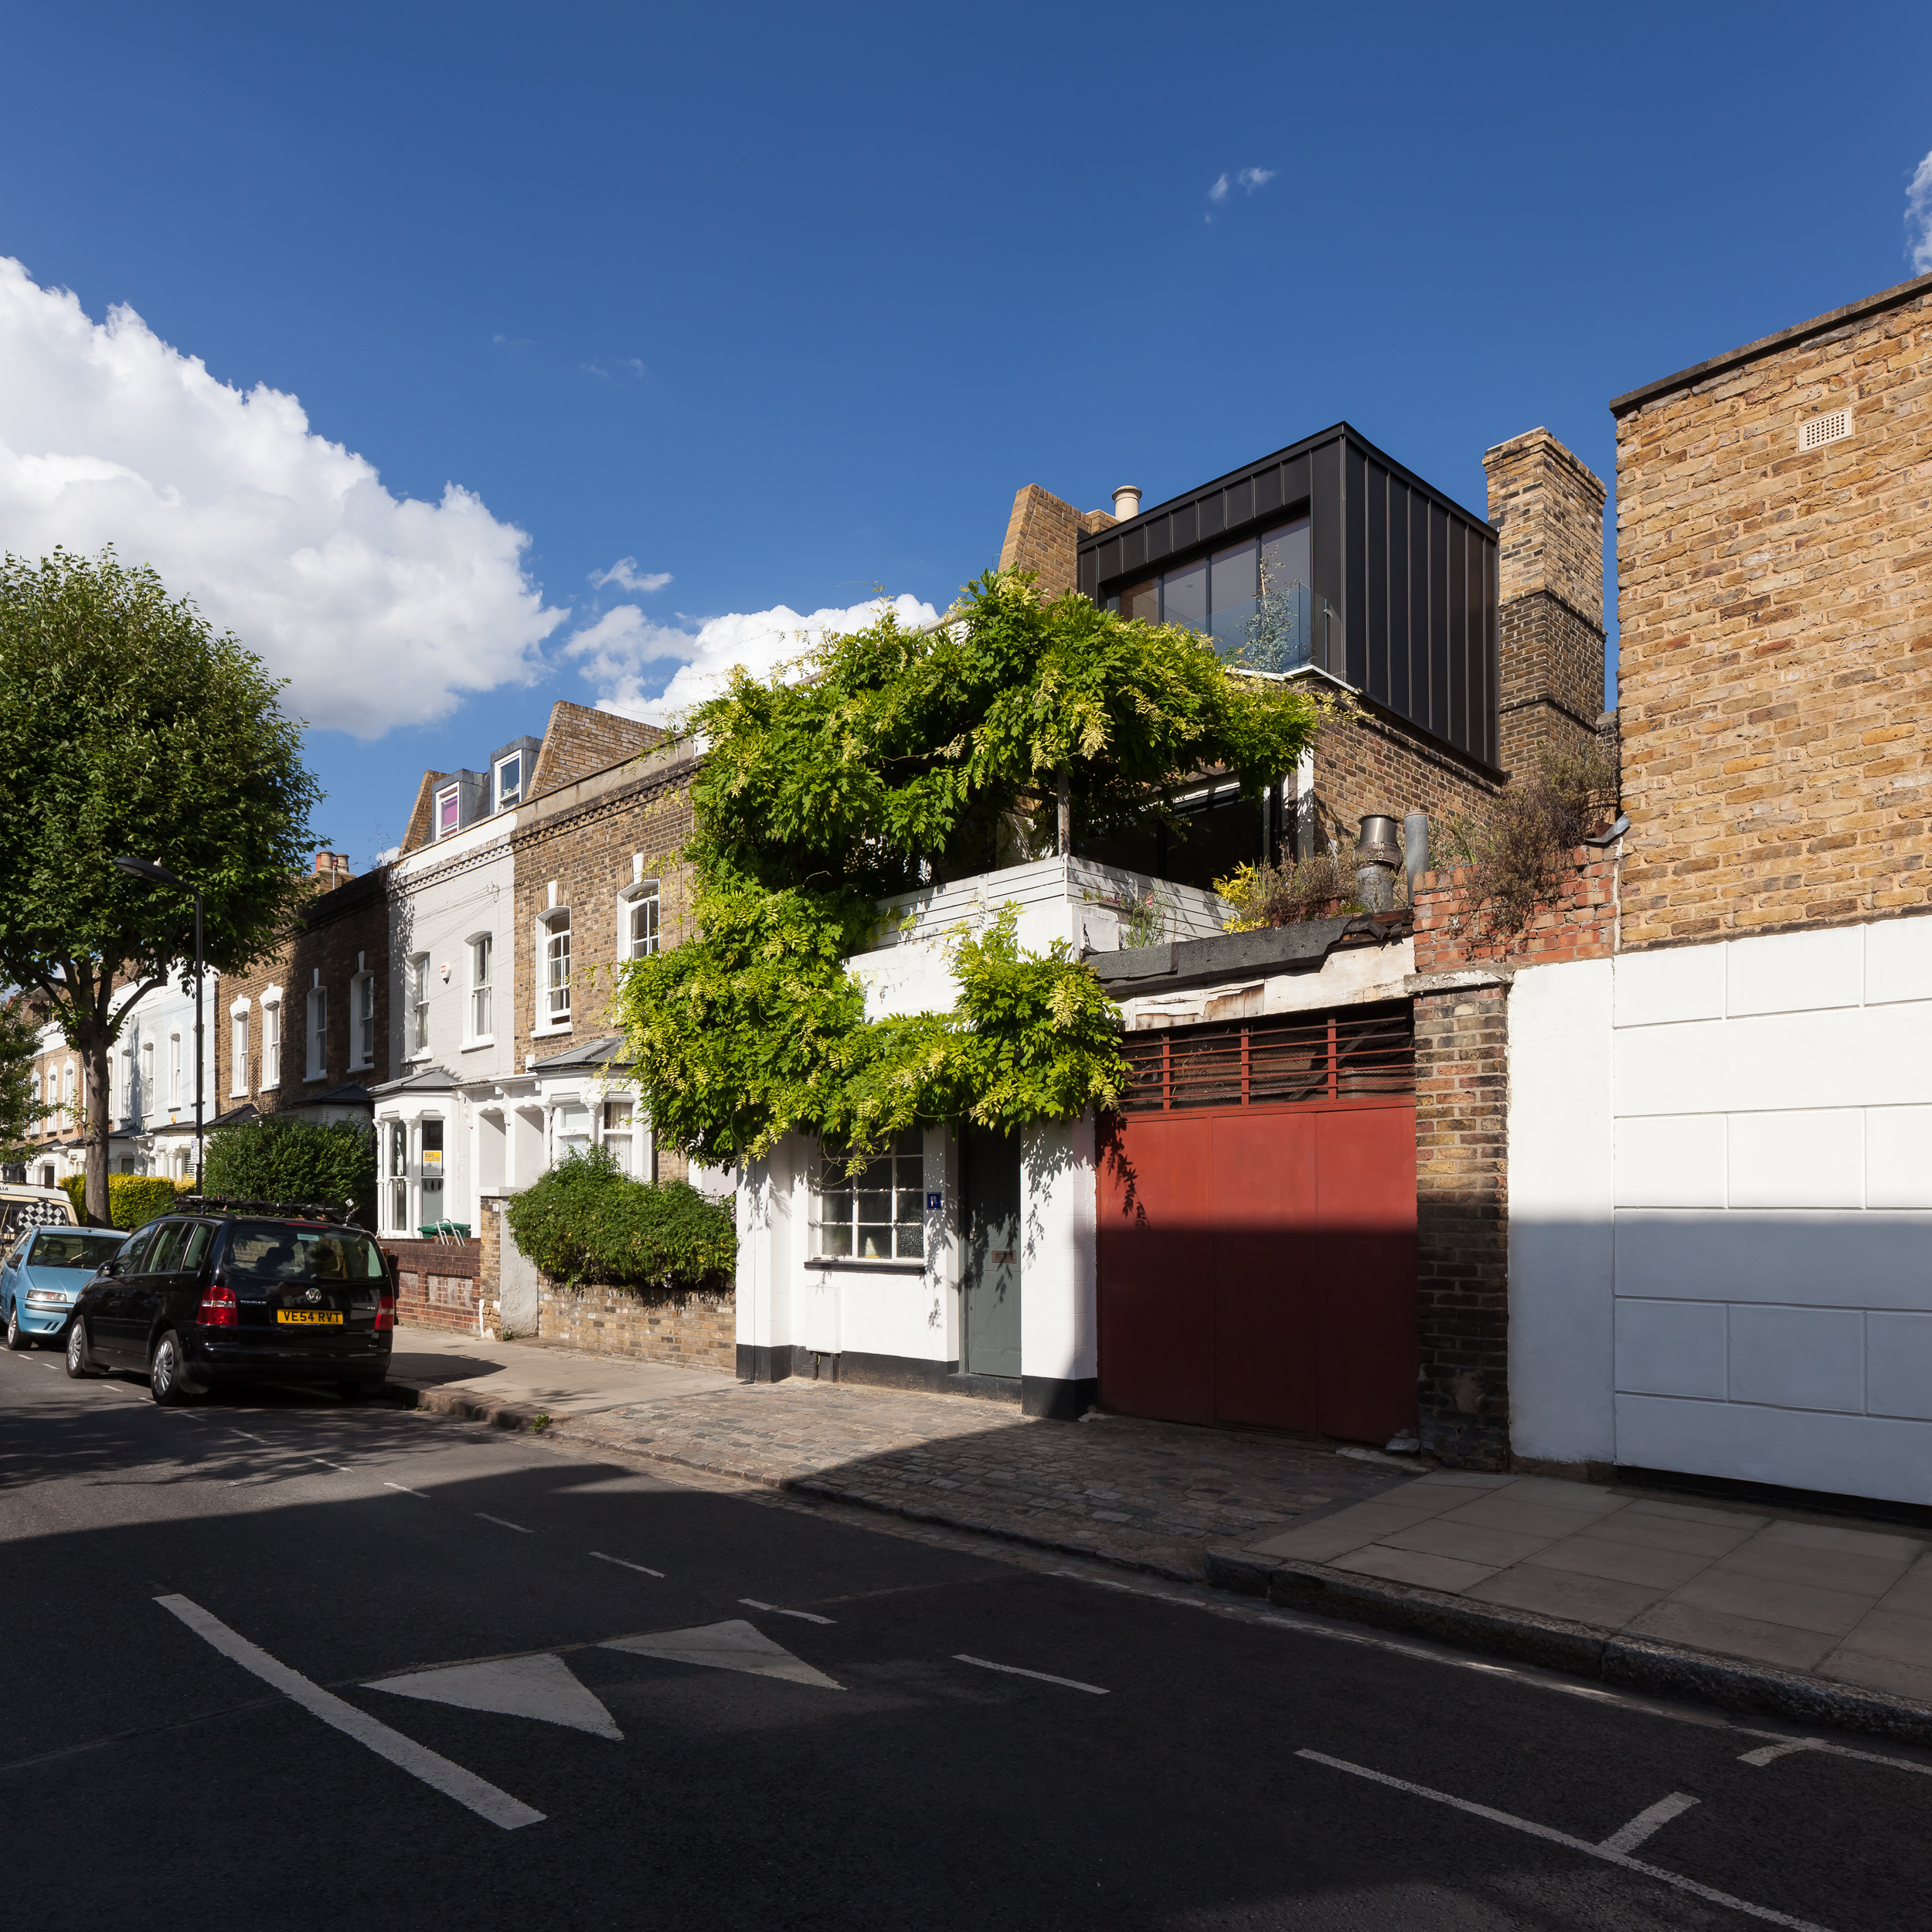 Pano_8577_8579-Edit - A+Architecture_Oldfield_Road.jpg